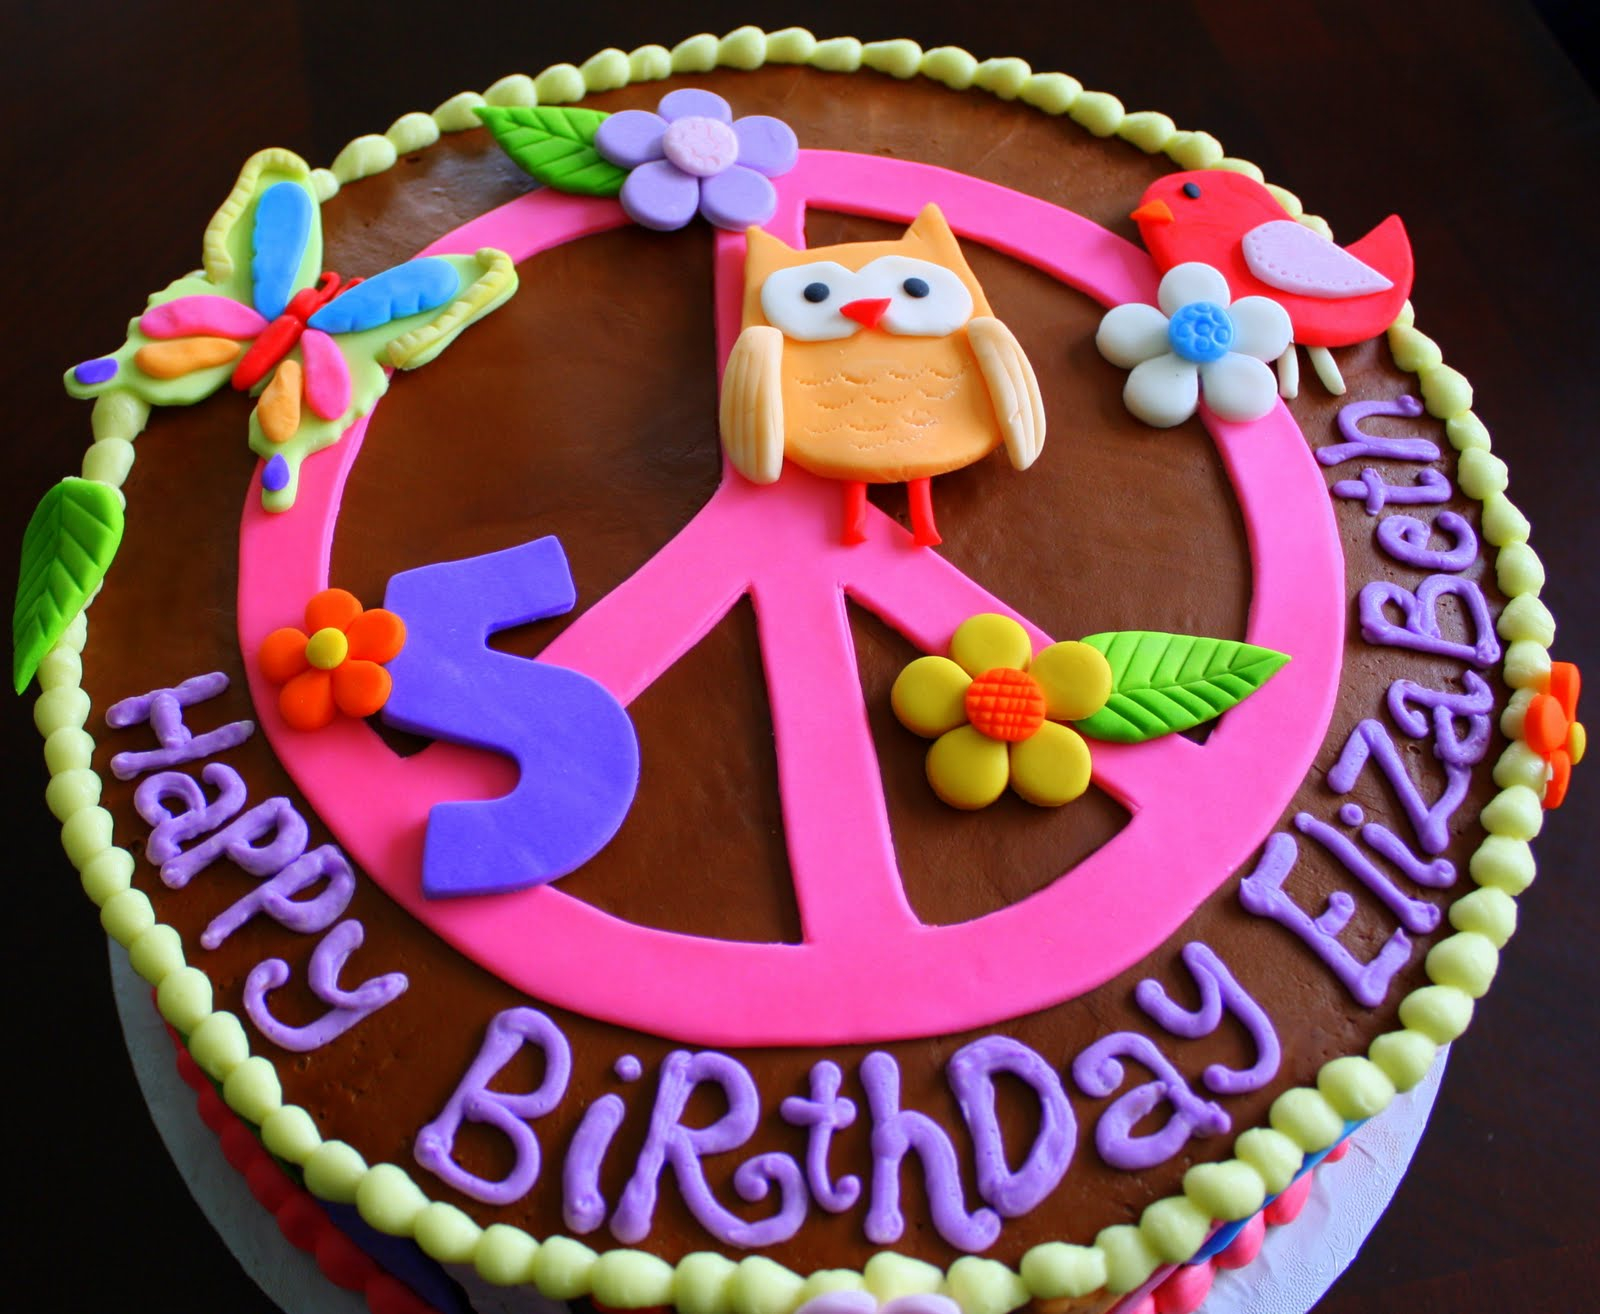 Hippie Birthday Cake 11 Hippie Chick Birthday Cakes Photo Hippie Chick Birthday Cake